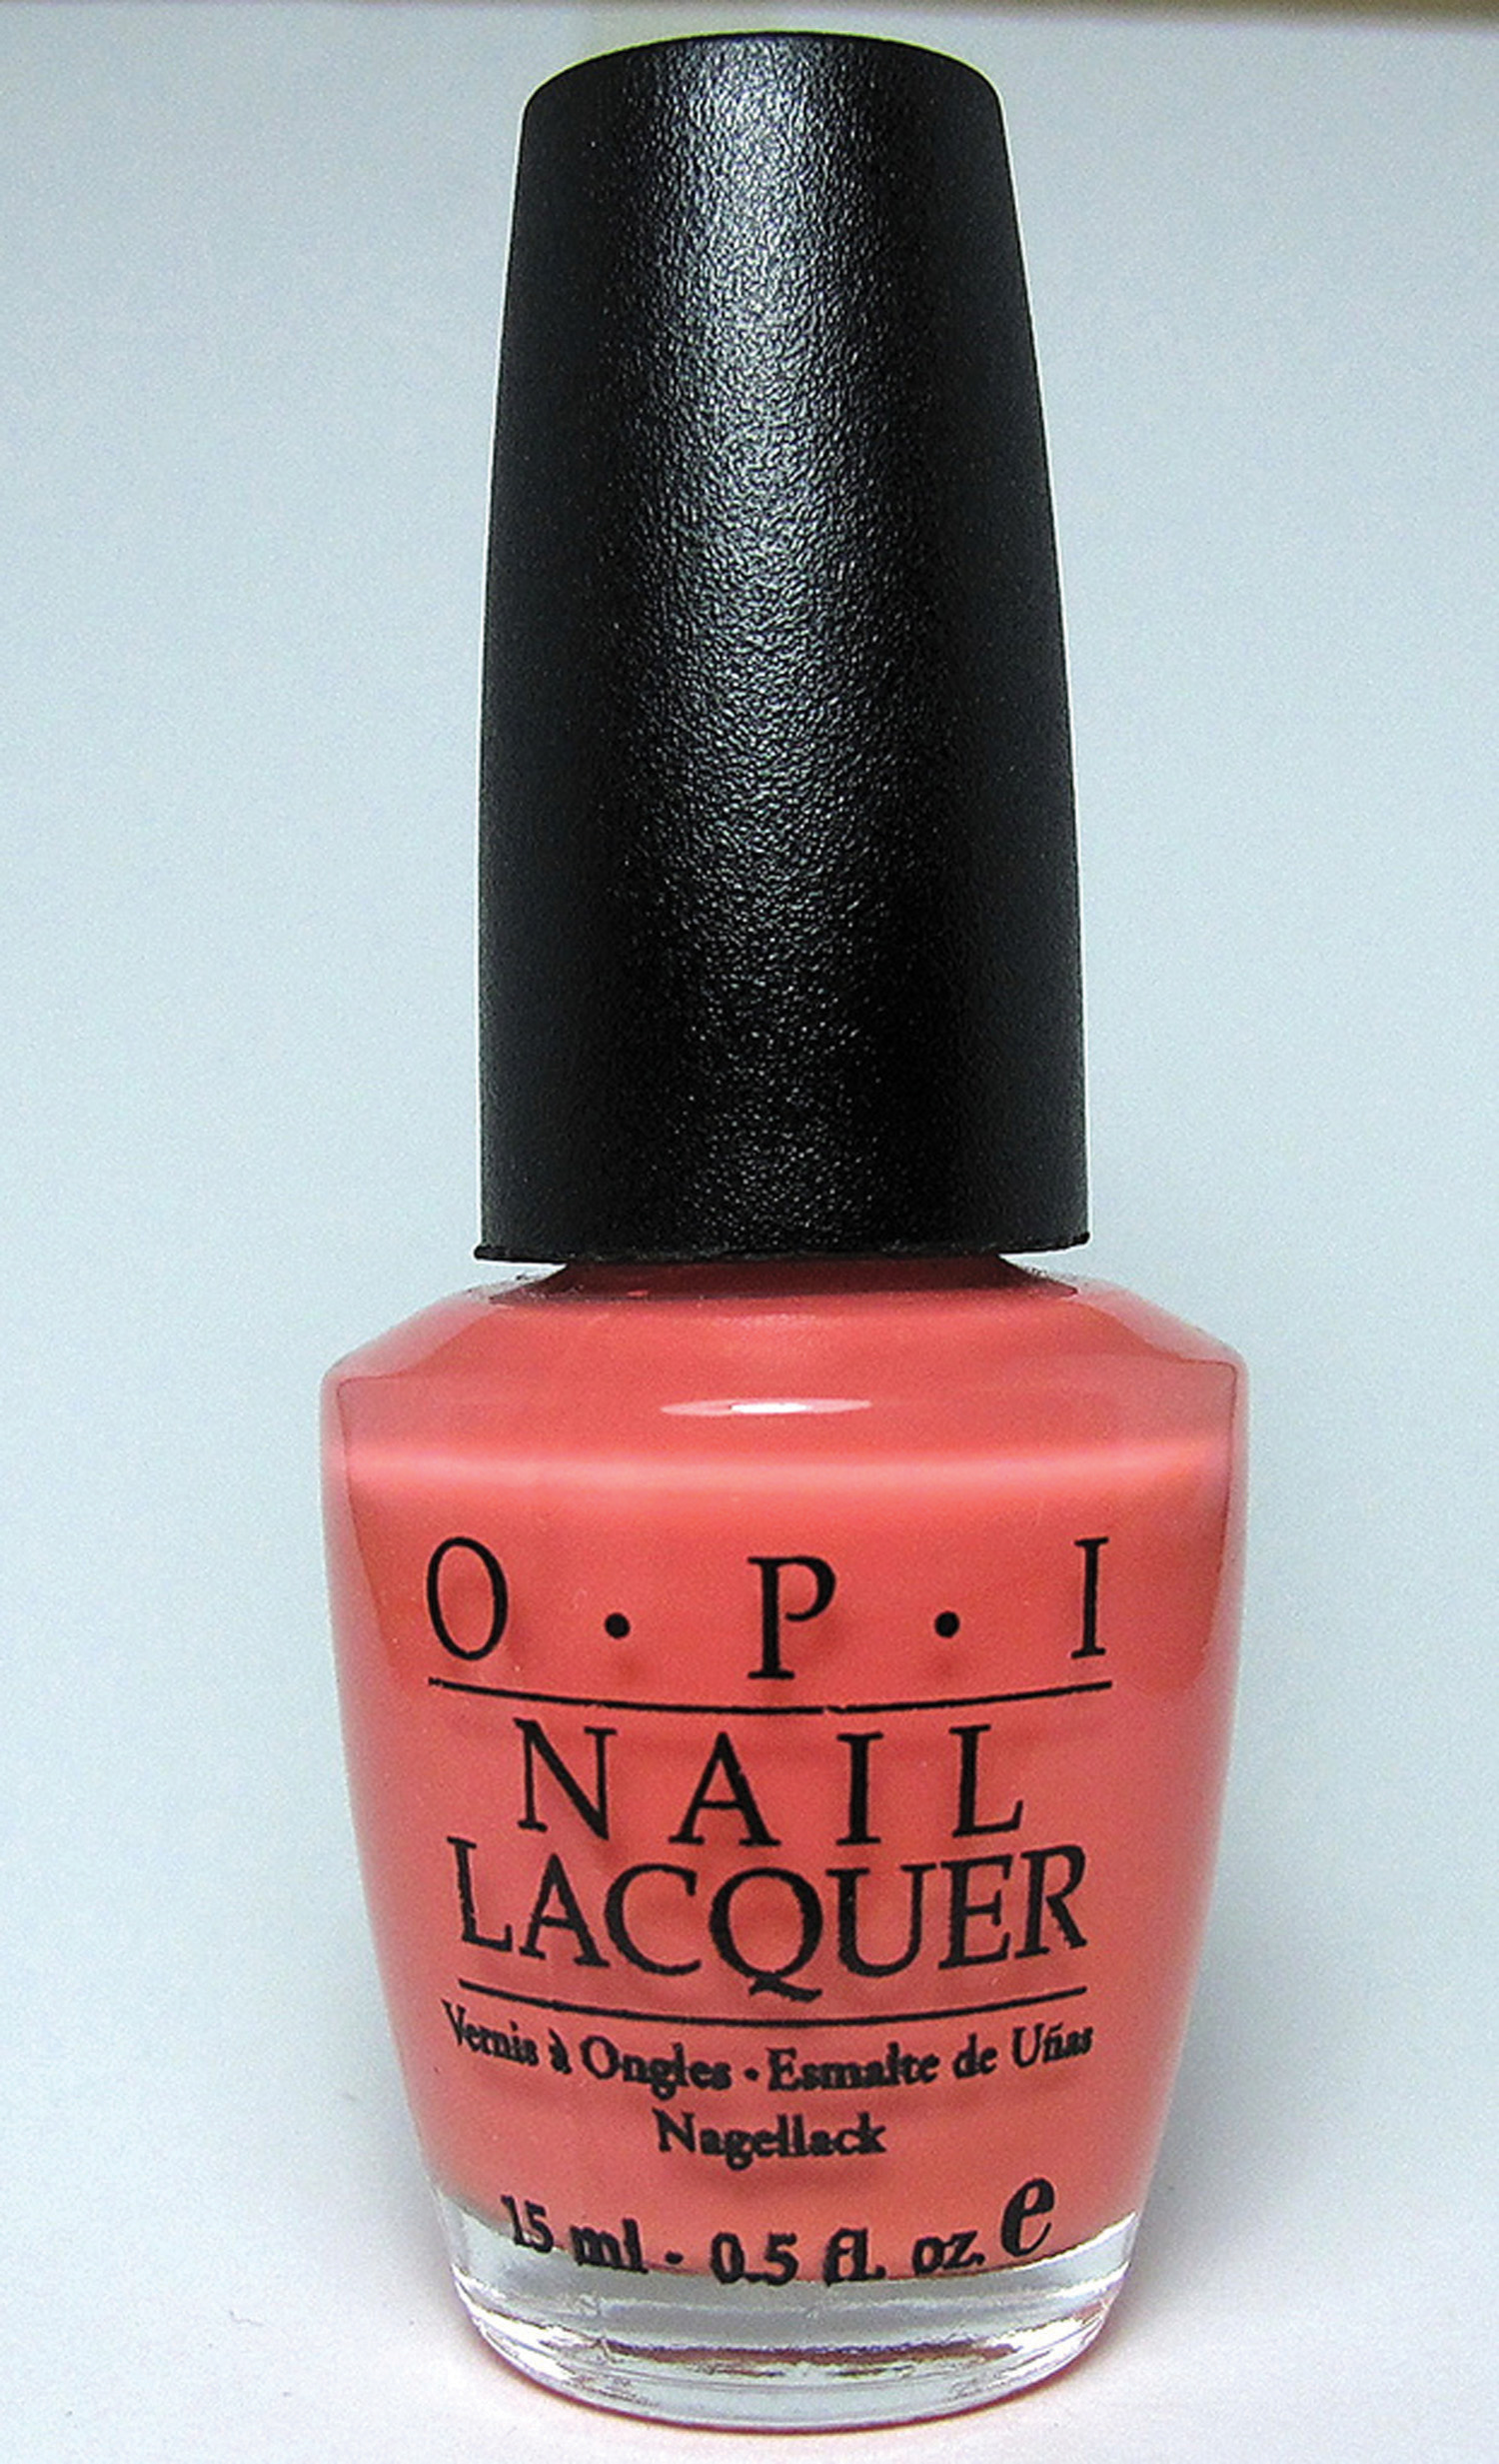 Image of a OPI Nail Lacquer bottle.